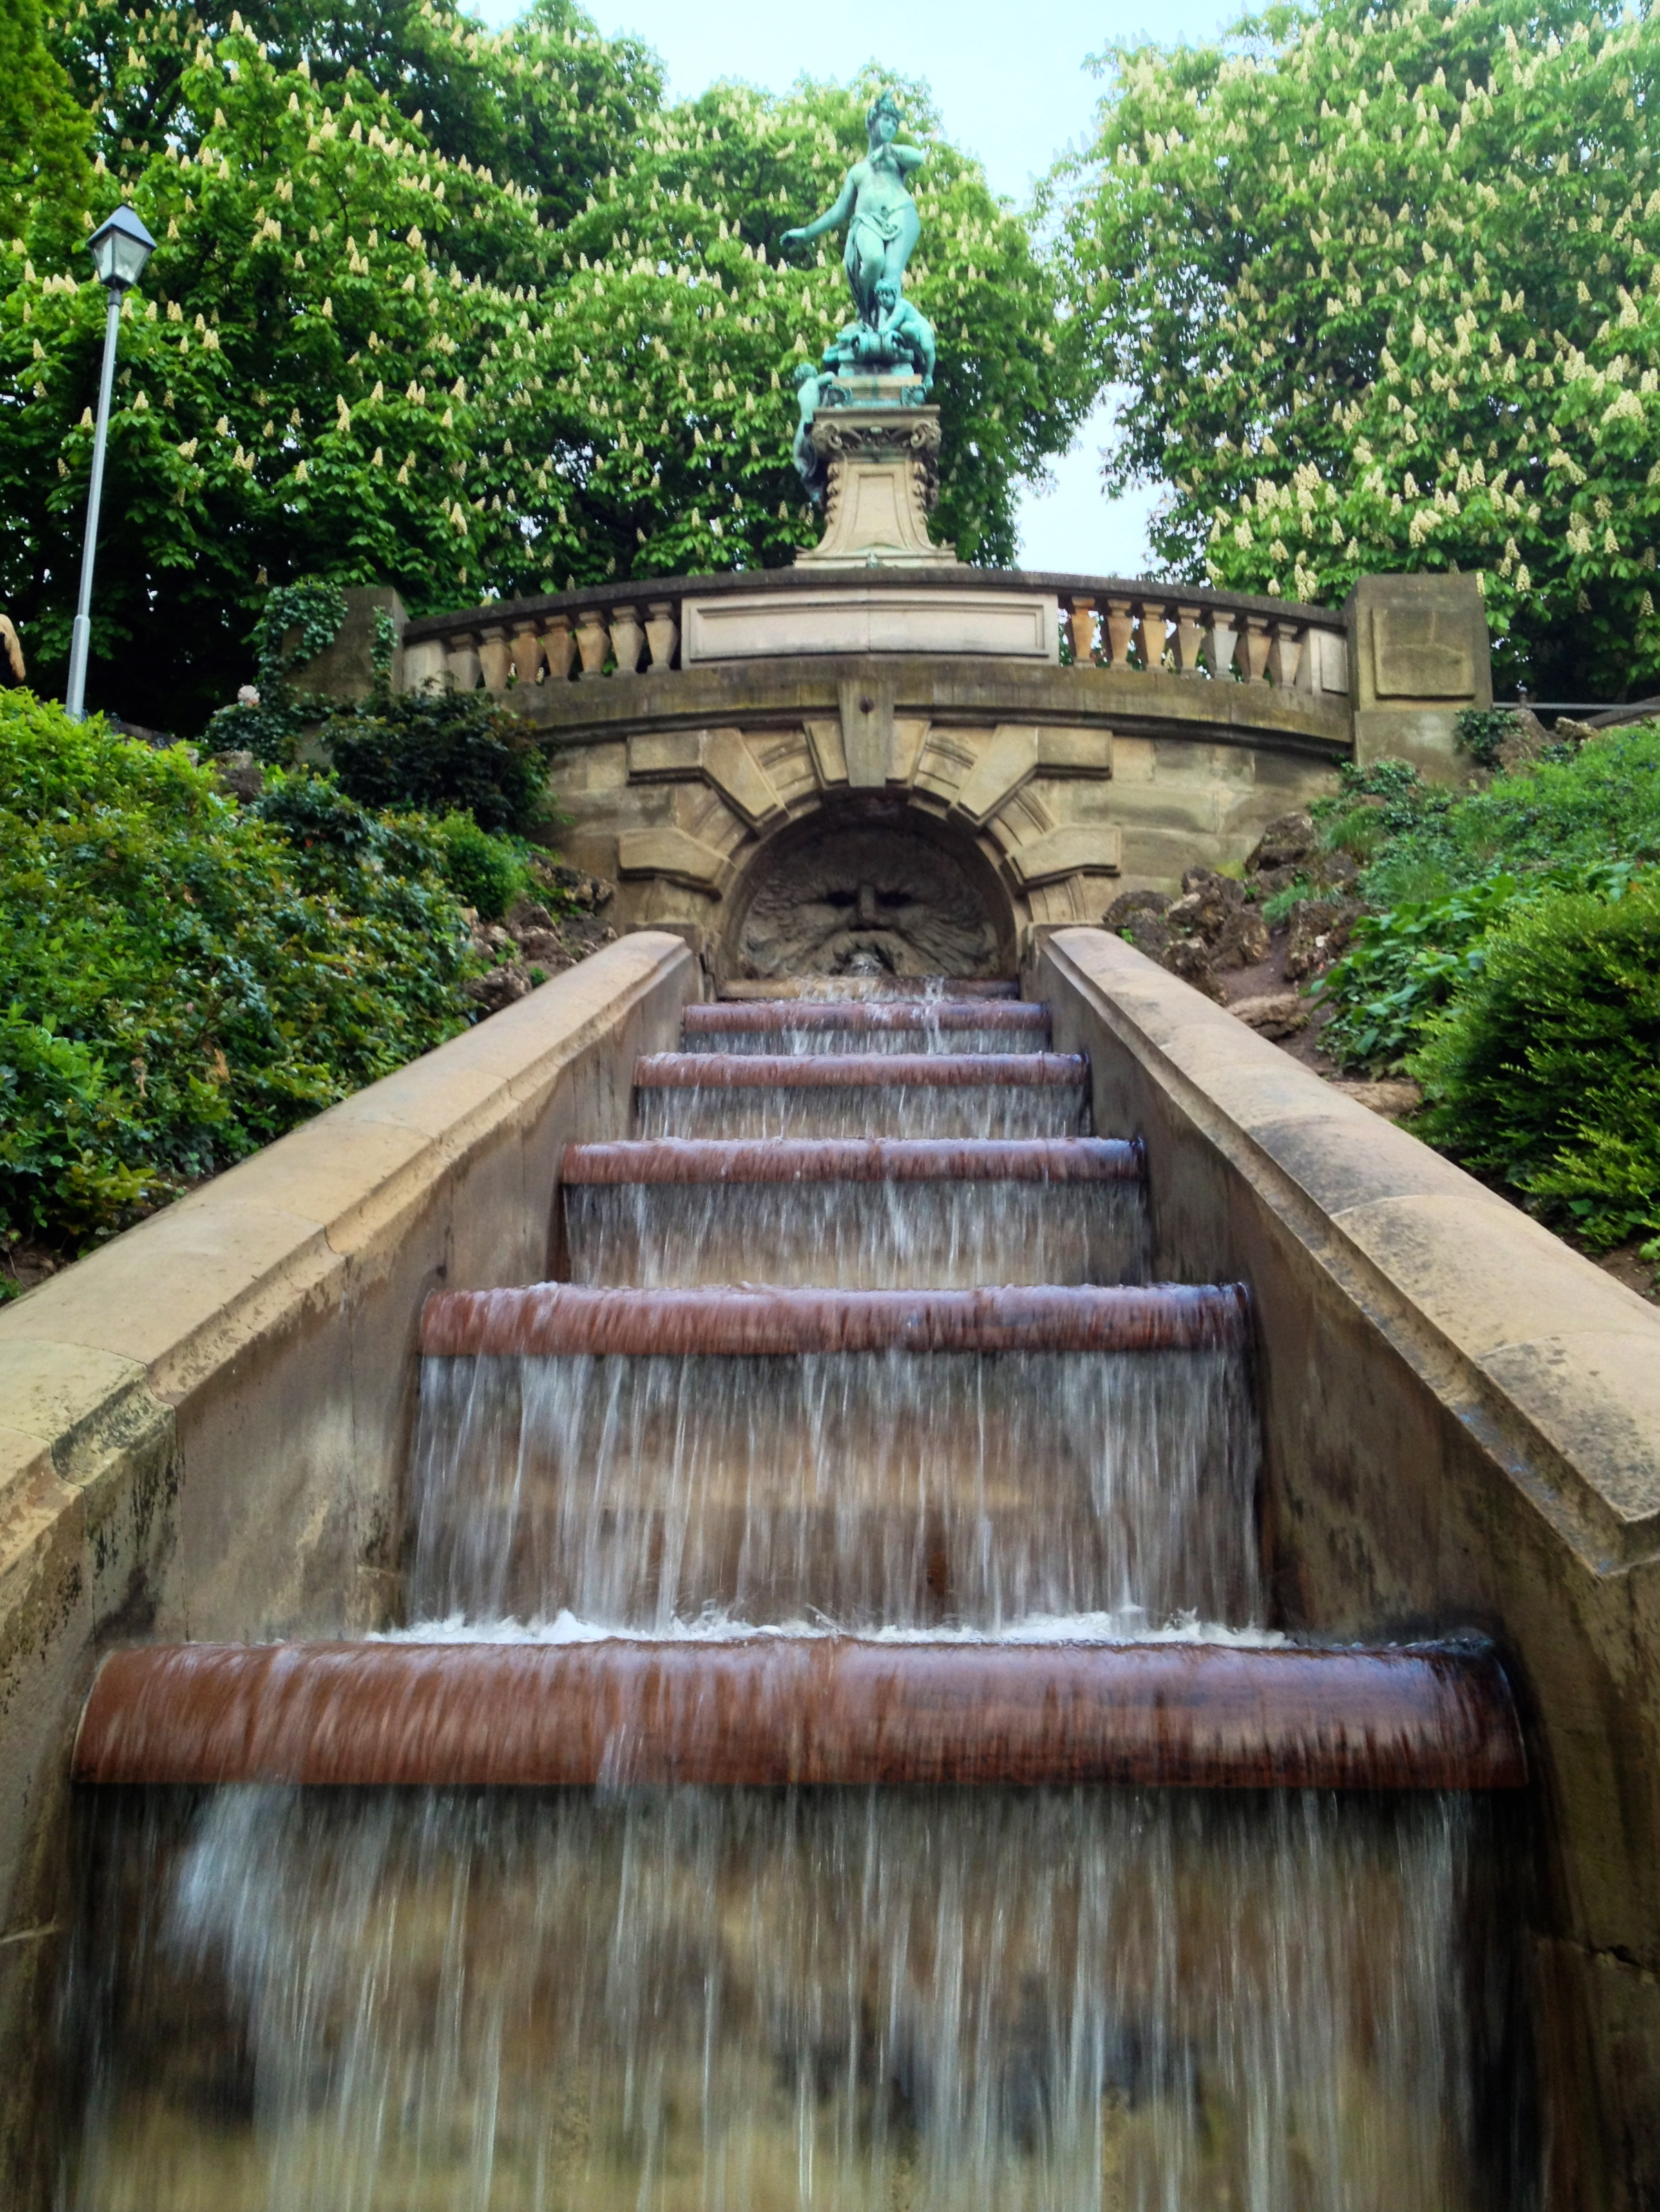 The lower part of the fountain